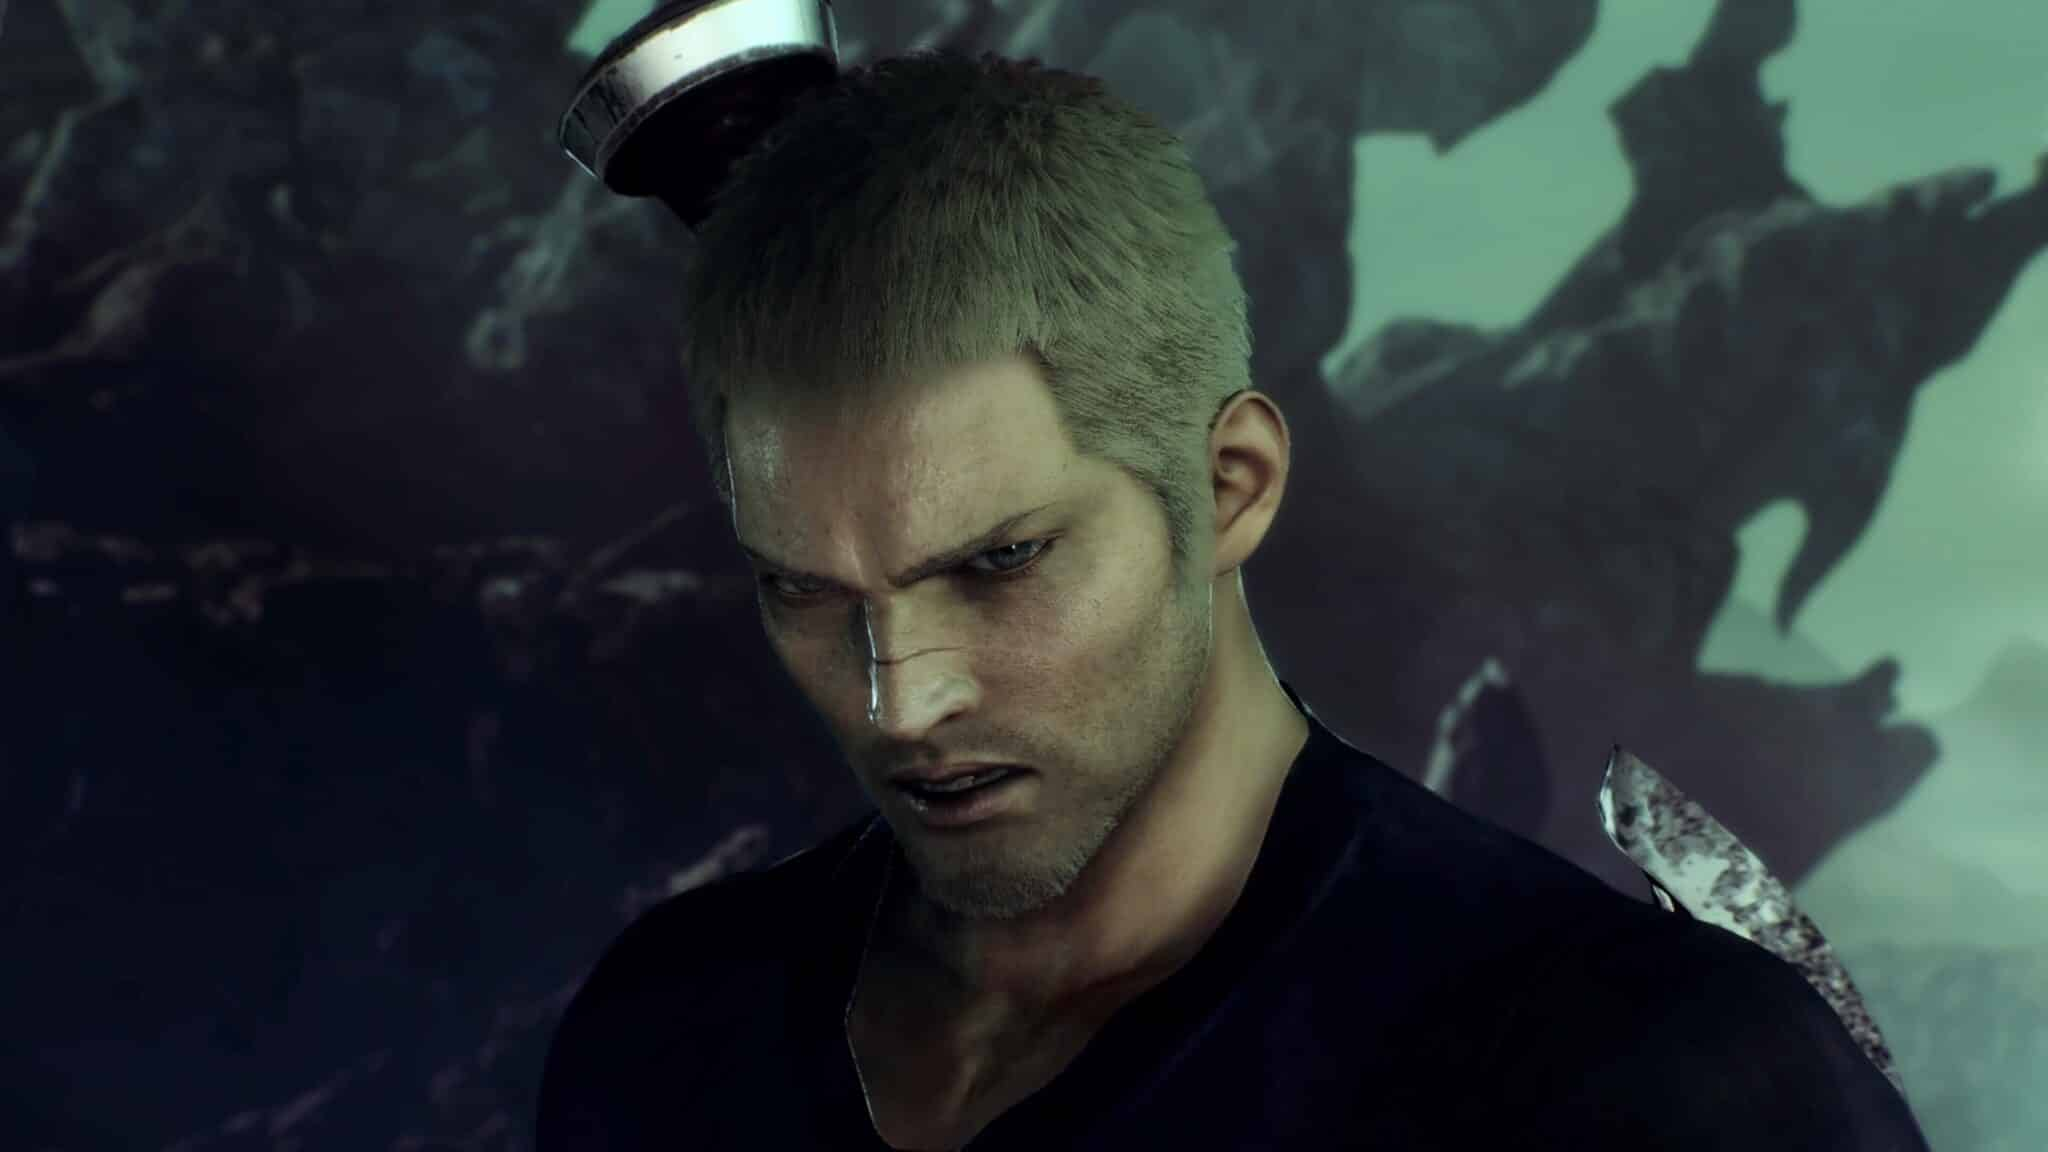 jack from new final fantasy game